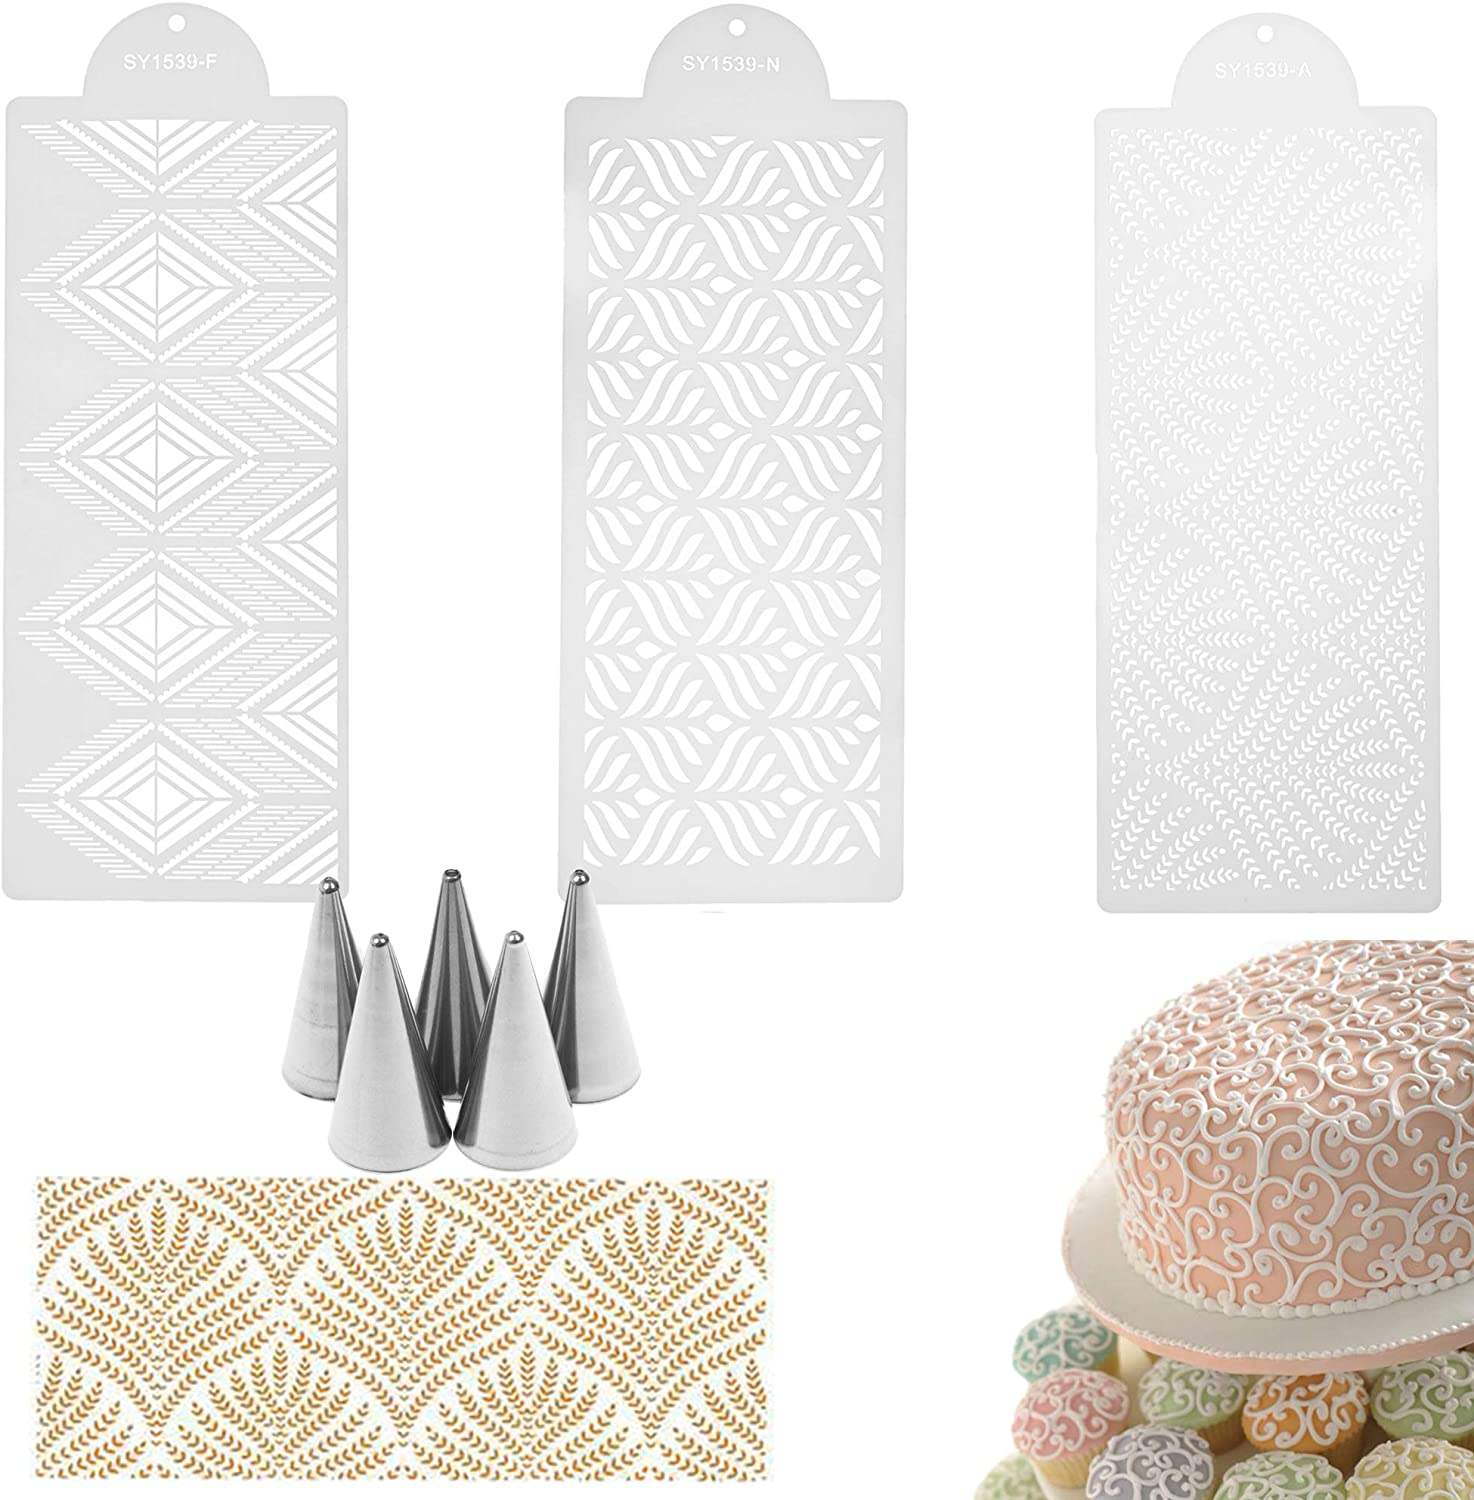 EOPER 3 Pieces Cake Decorating Stencils Molds Floral Cake Templates Food Grade Plastic Hollow Stencils Molds Spray Paint Baking Tools with 5 Pieces Cake Decorating Tips